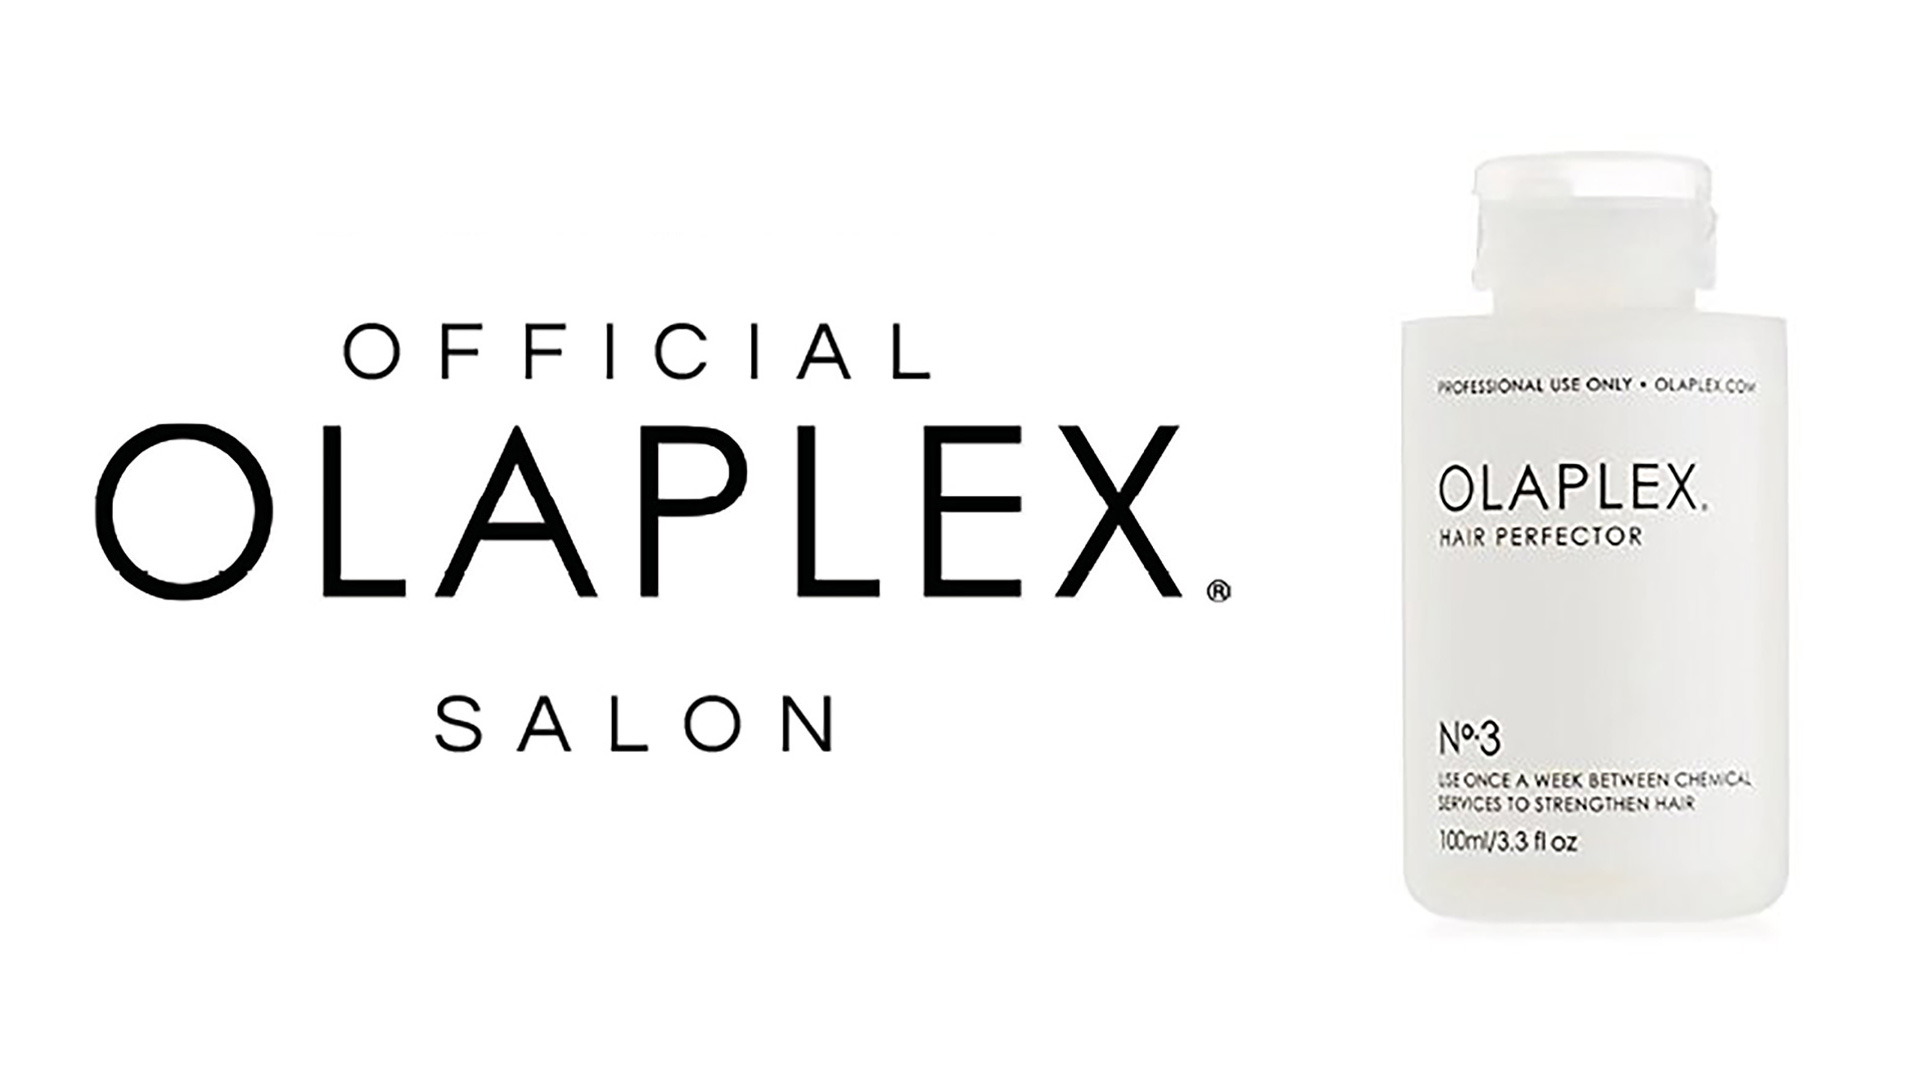 Official Olaplex Salon